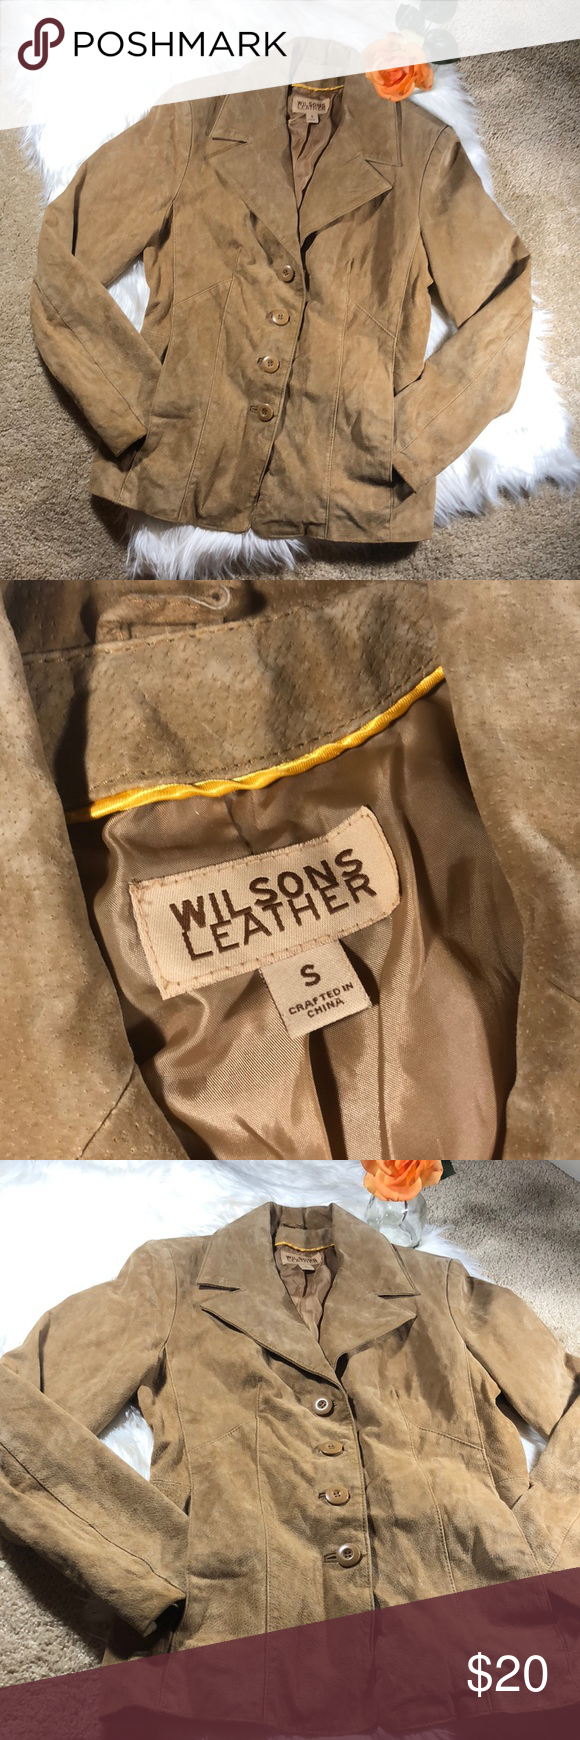 3/21! Wilson's Leather Suede tan coat Clothes design